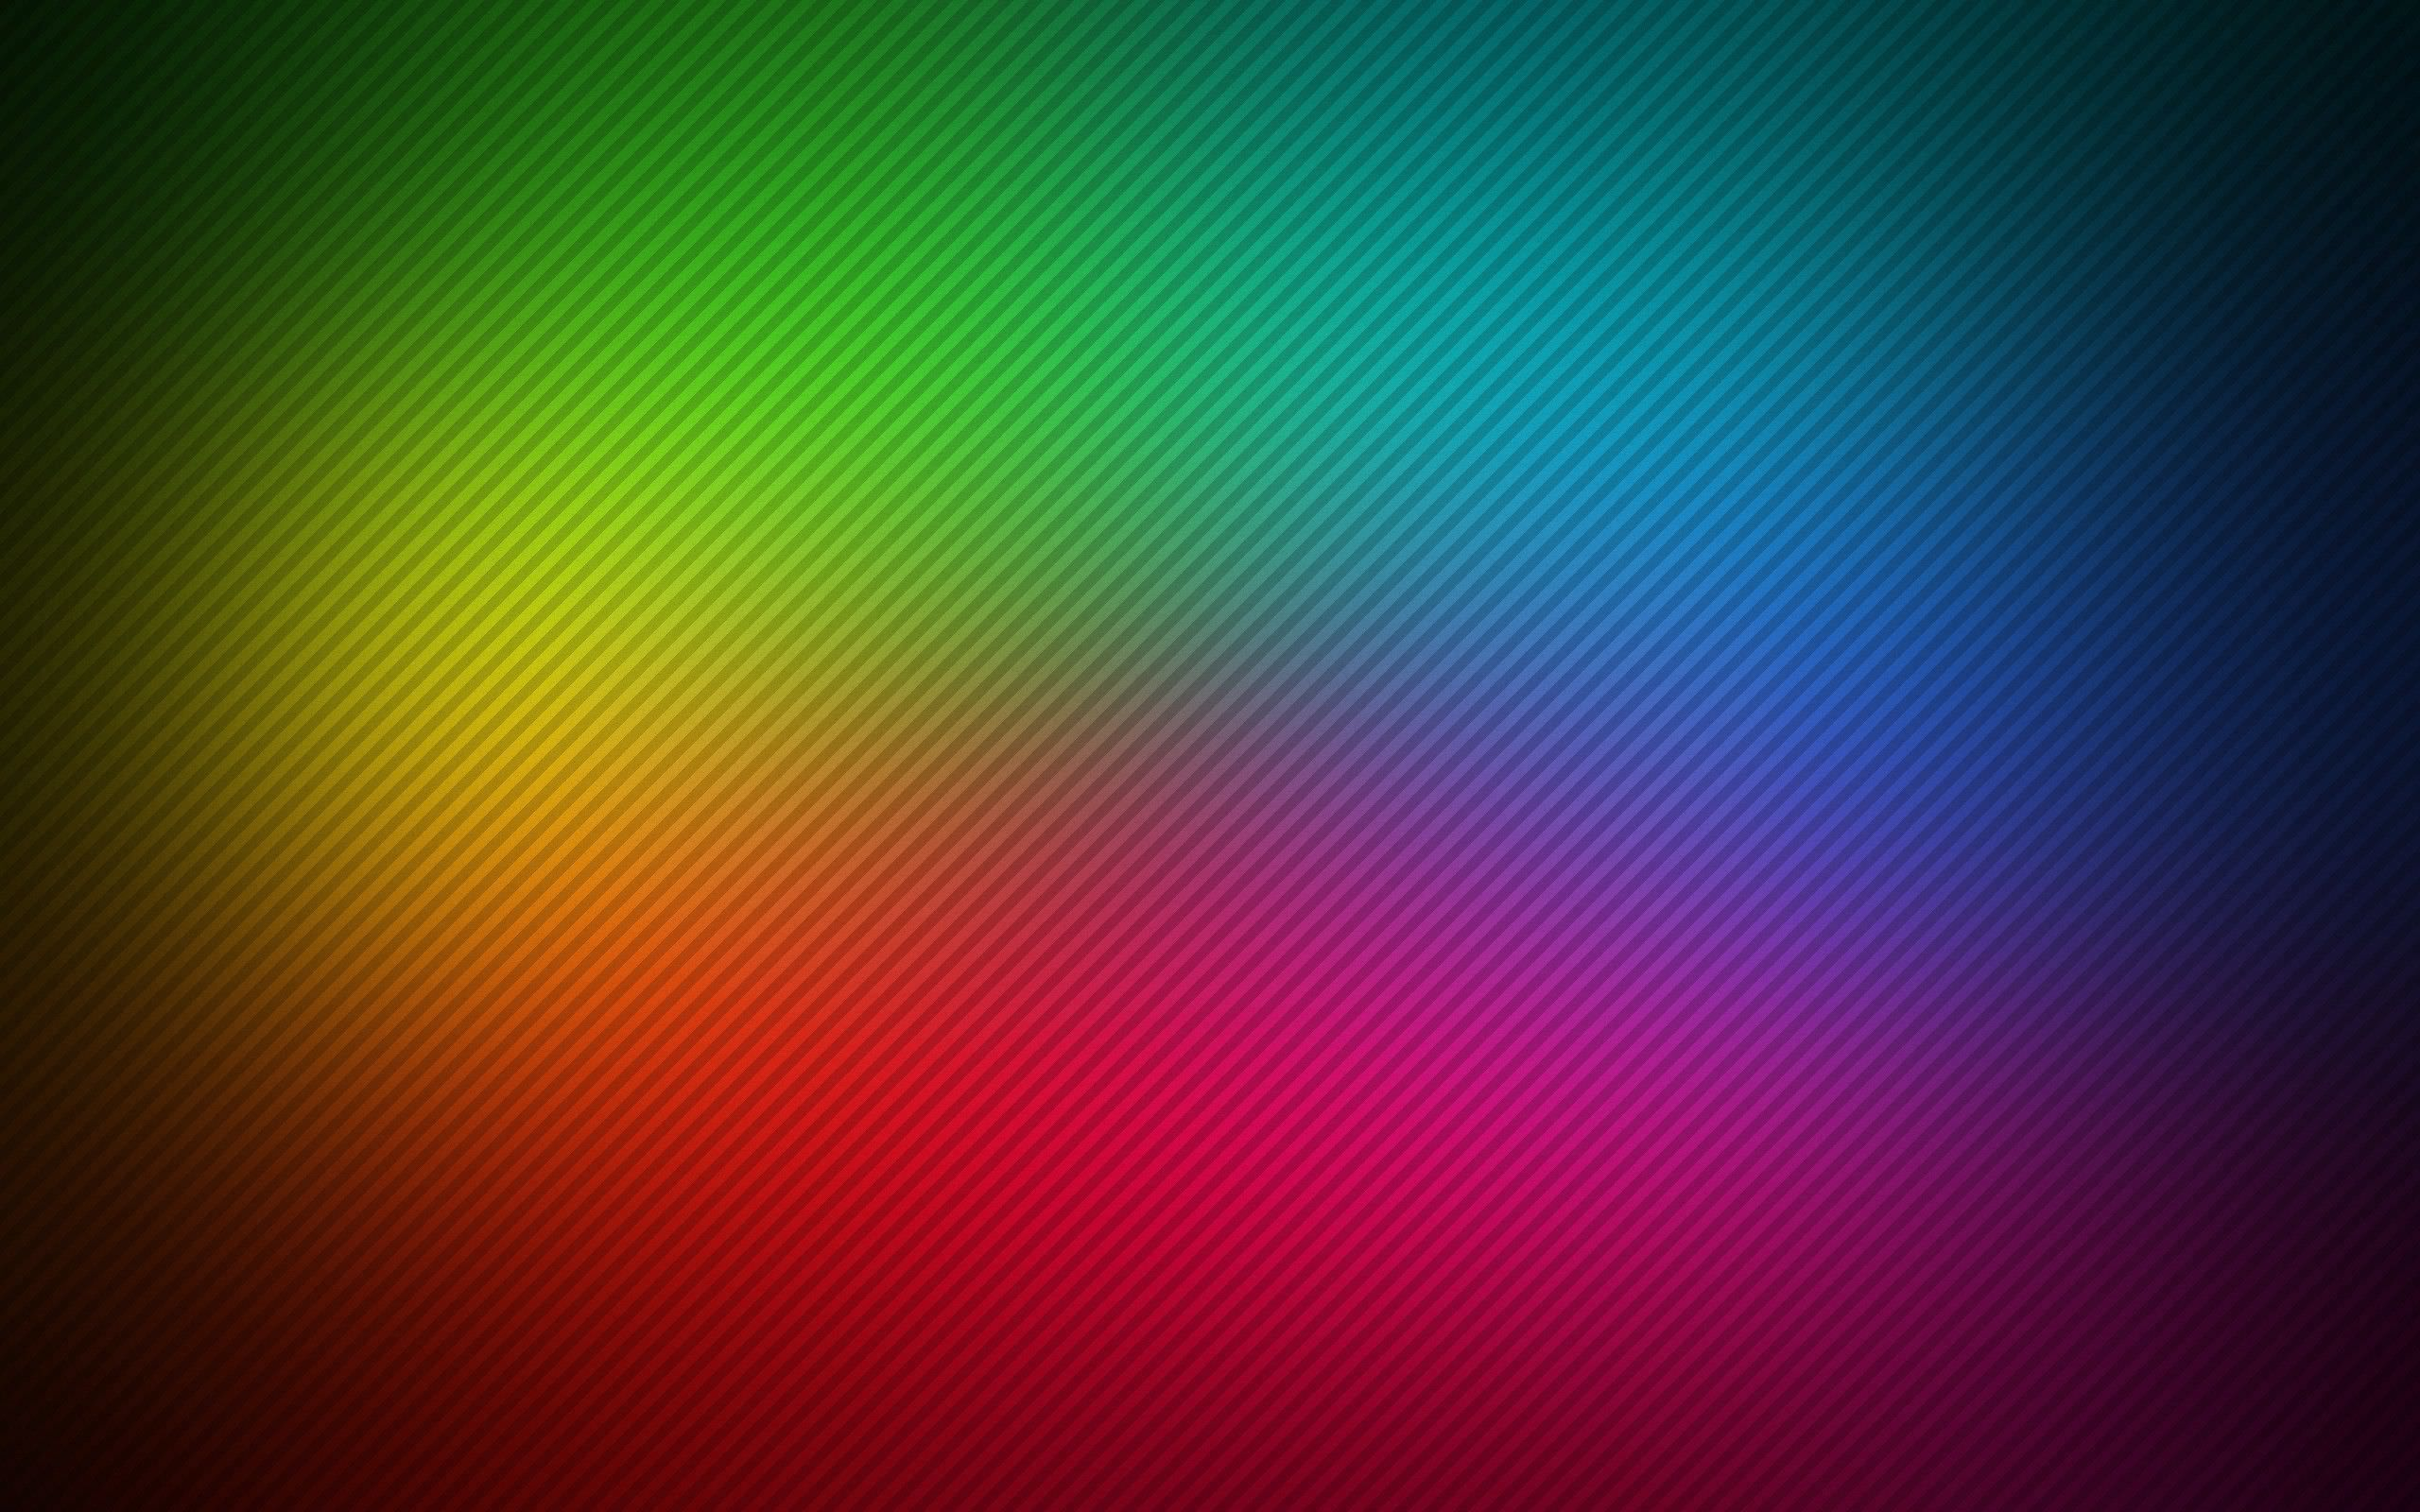 Bright-Lines-Resolution-Image-Wallpaper